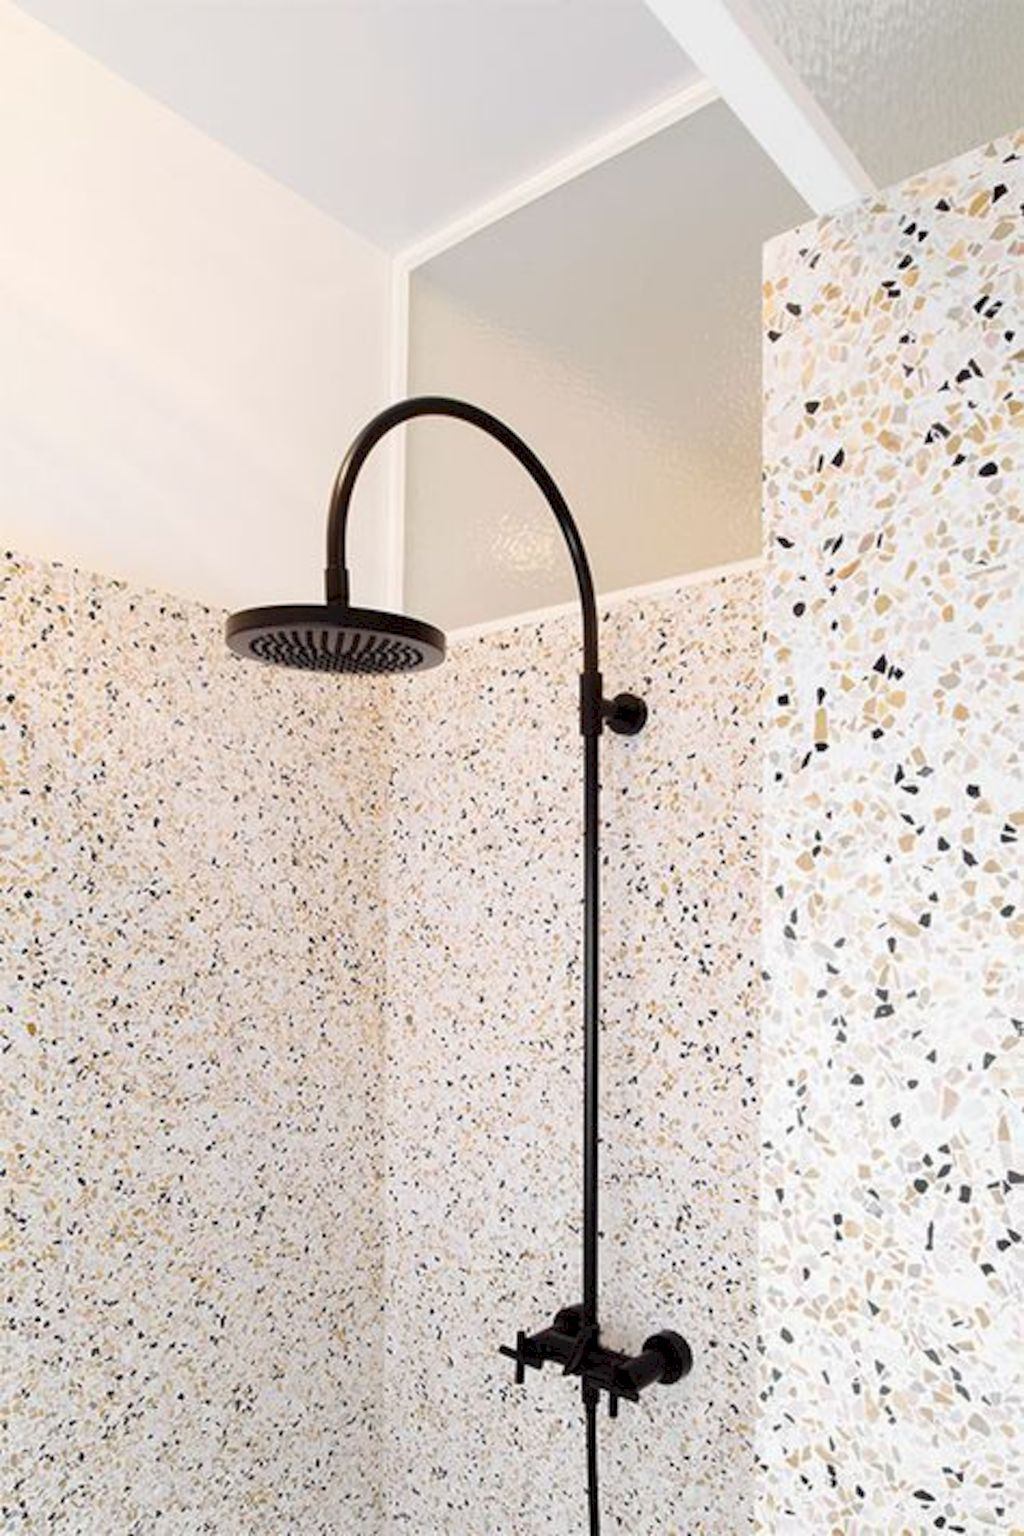 Terrazzo tiles used in bathroom renovation showing classical comeback that bring an artistic retro statement in your home Image 46